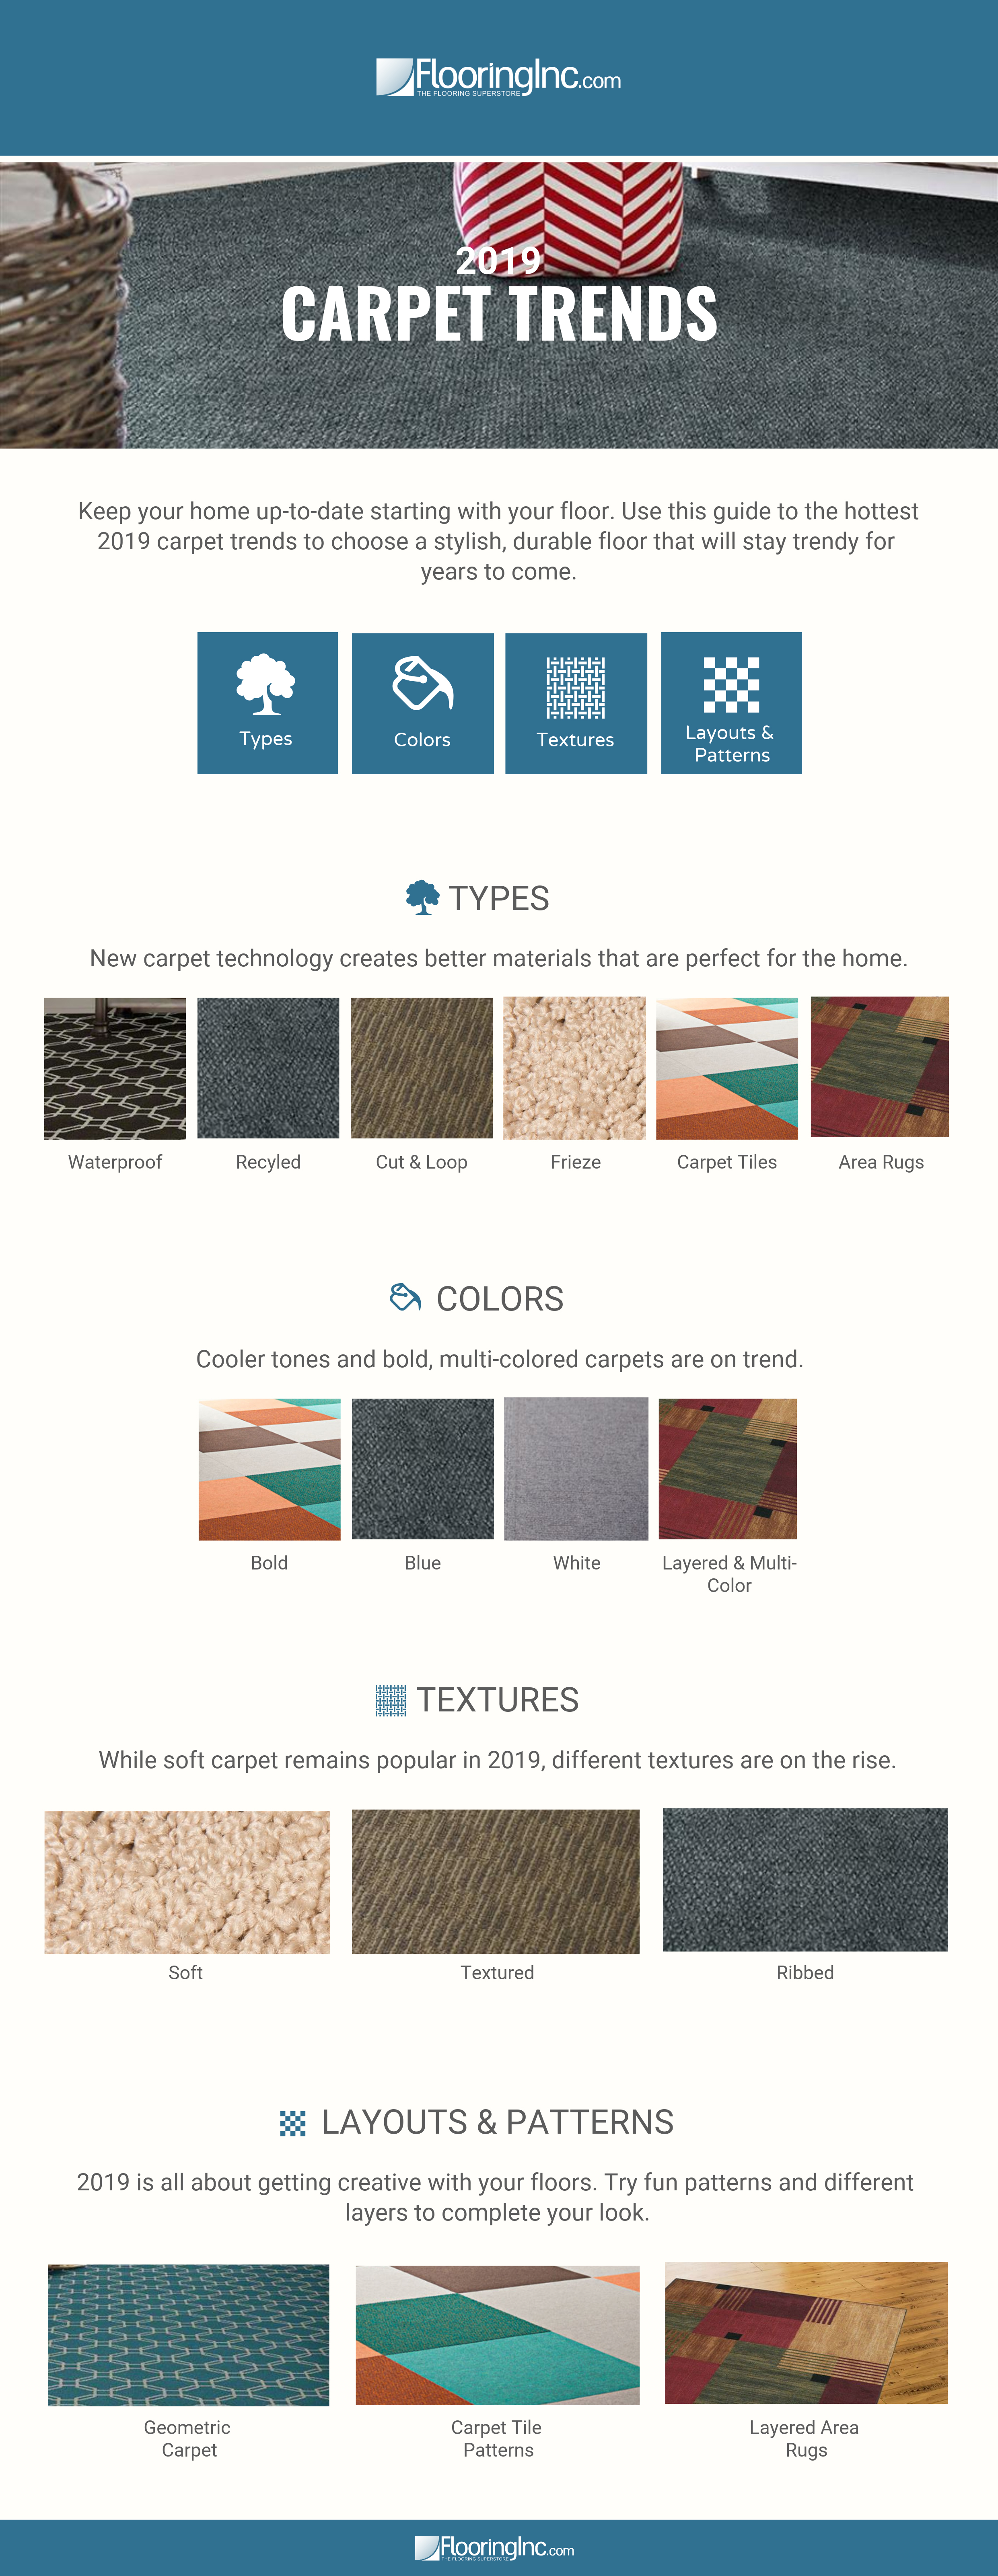 2019 Carpet Trends at a Glance